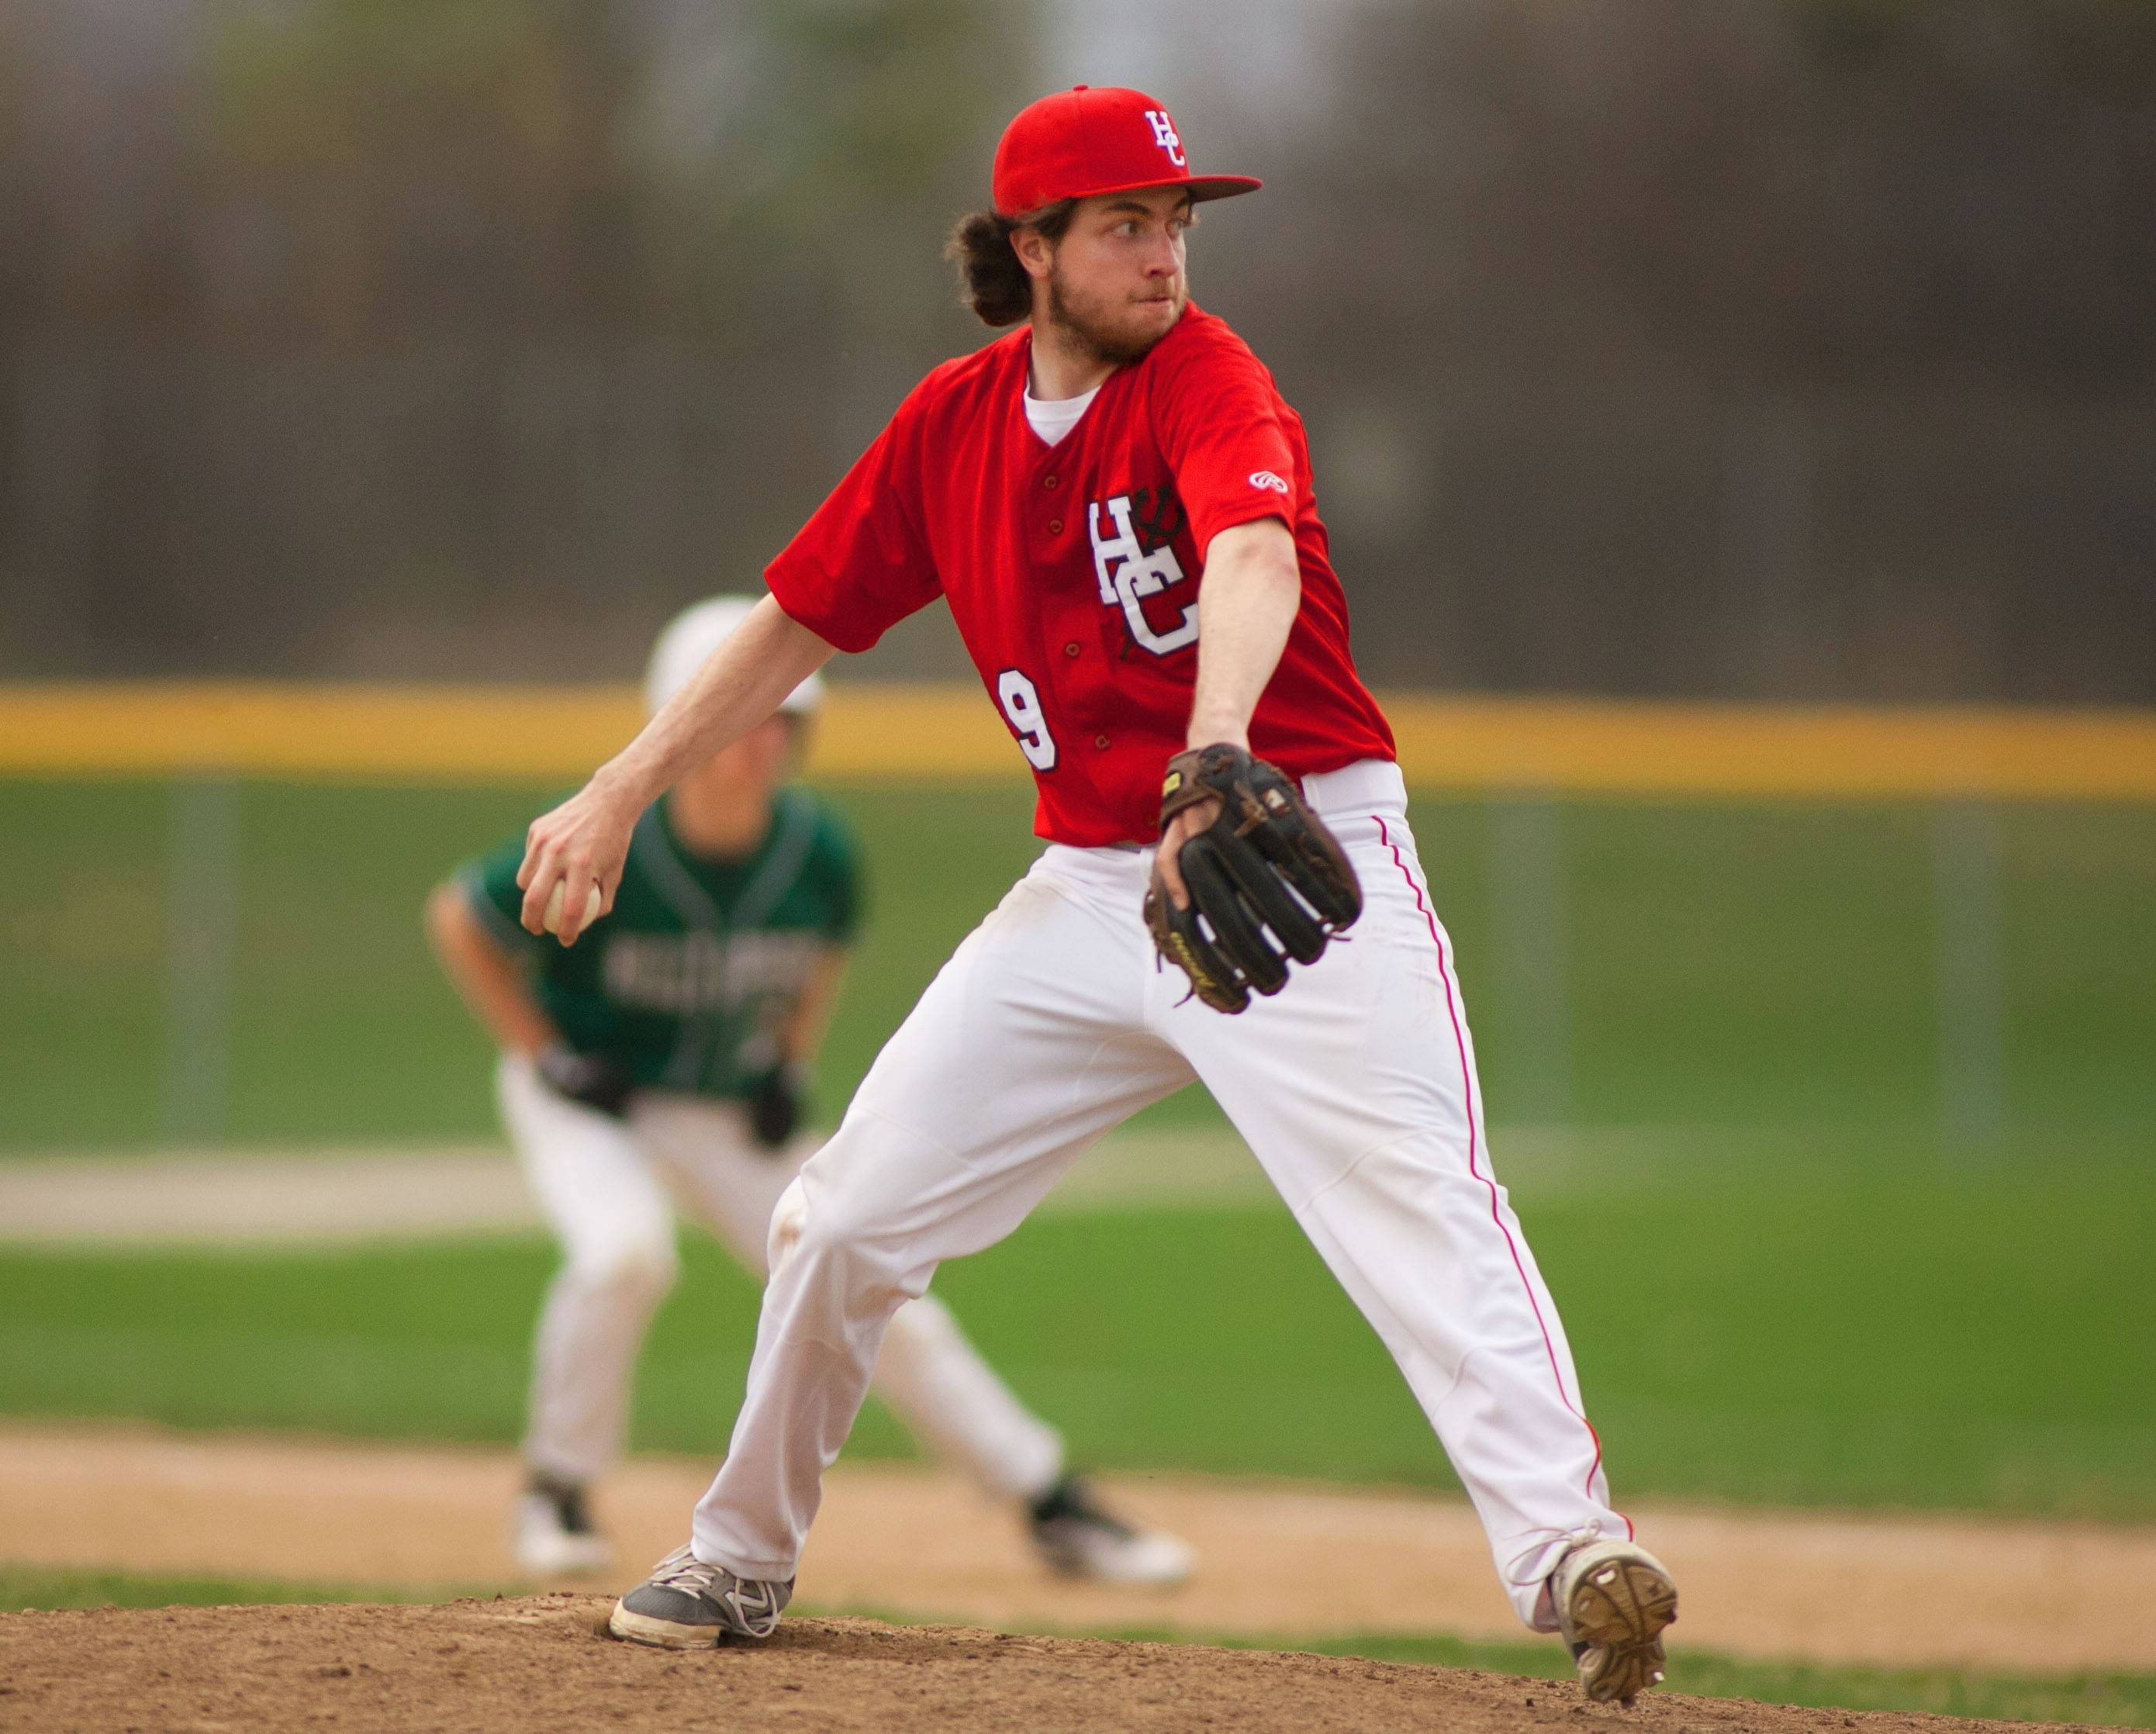 Hinsdale Central's Charlie Banke shuts down Glenbard West, salvaging the final game of the series.